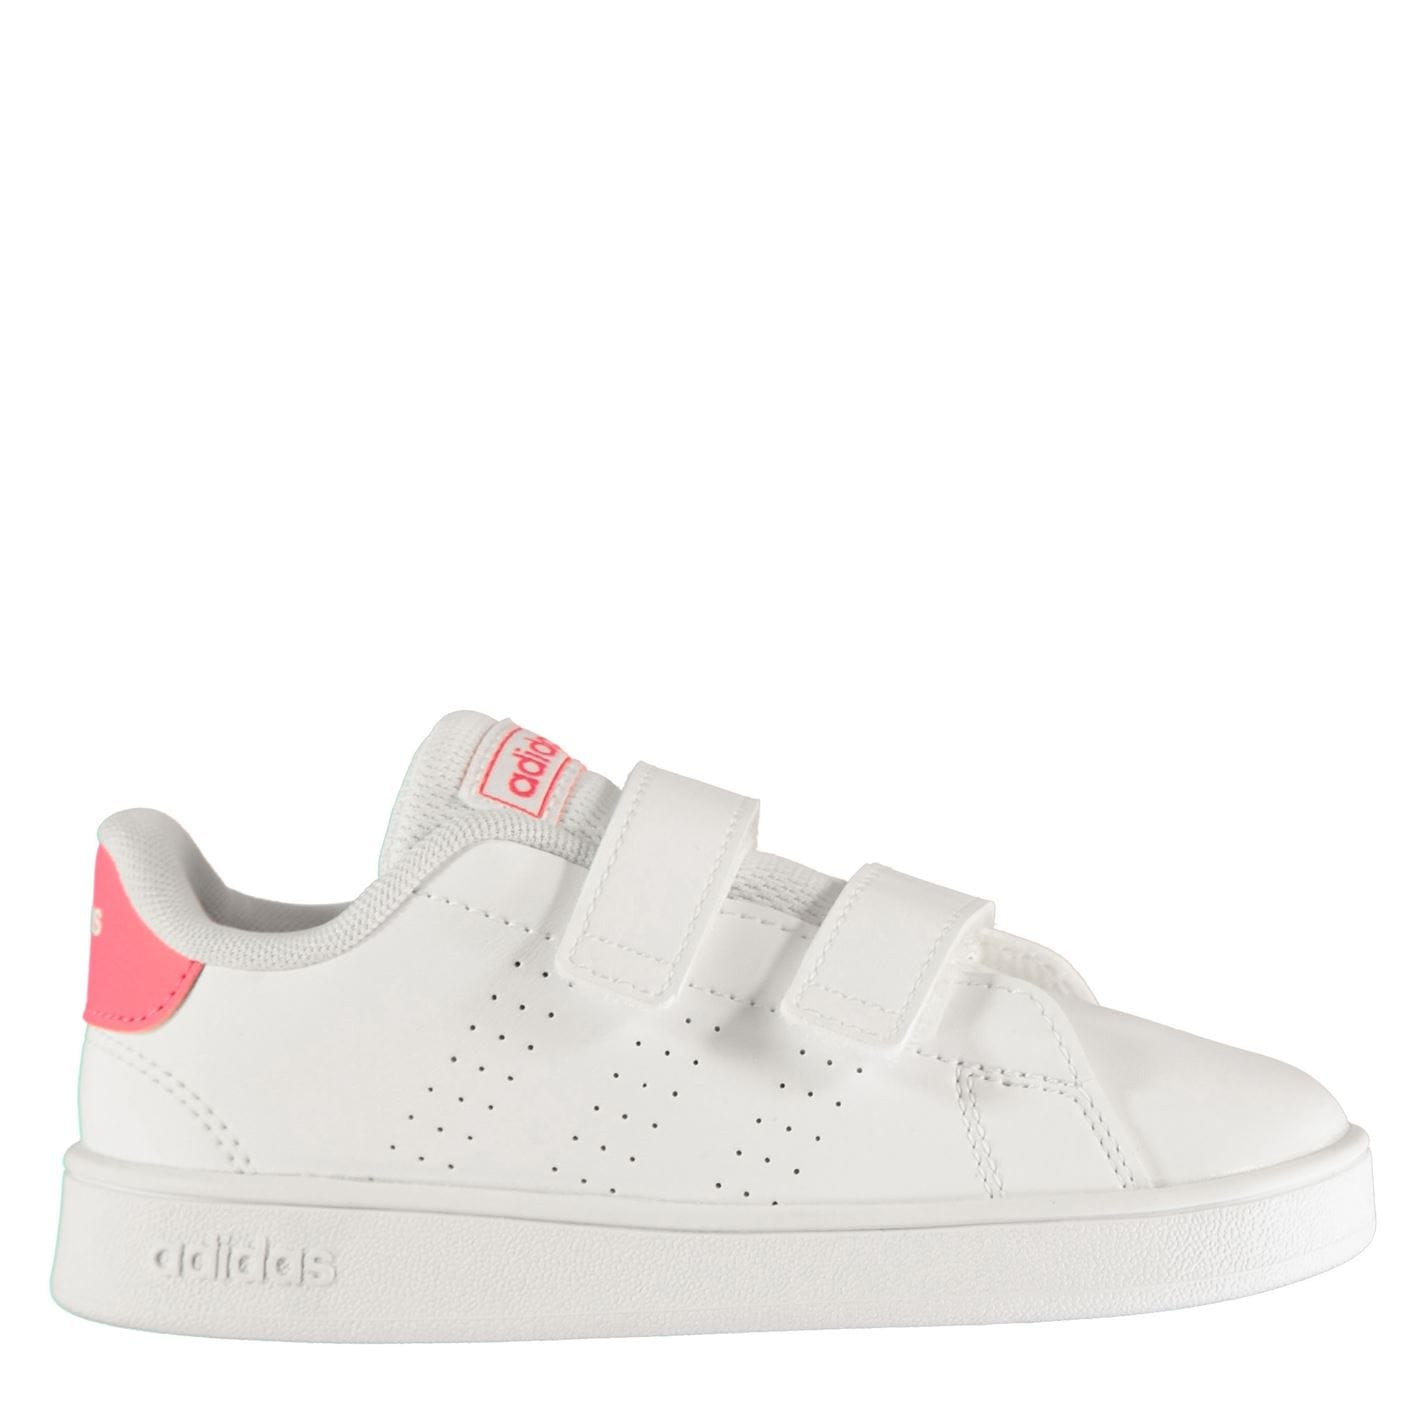 adidas adidas Advantage I Infant Girls Trainers White/Pink